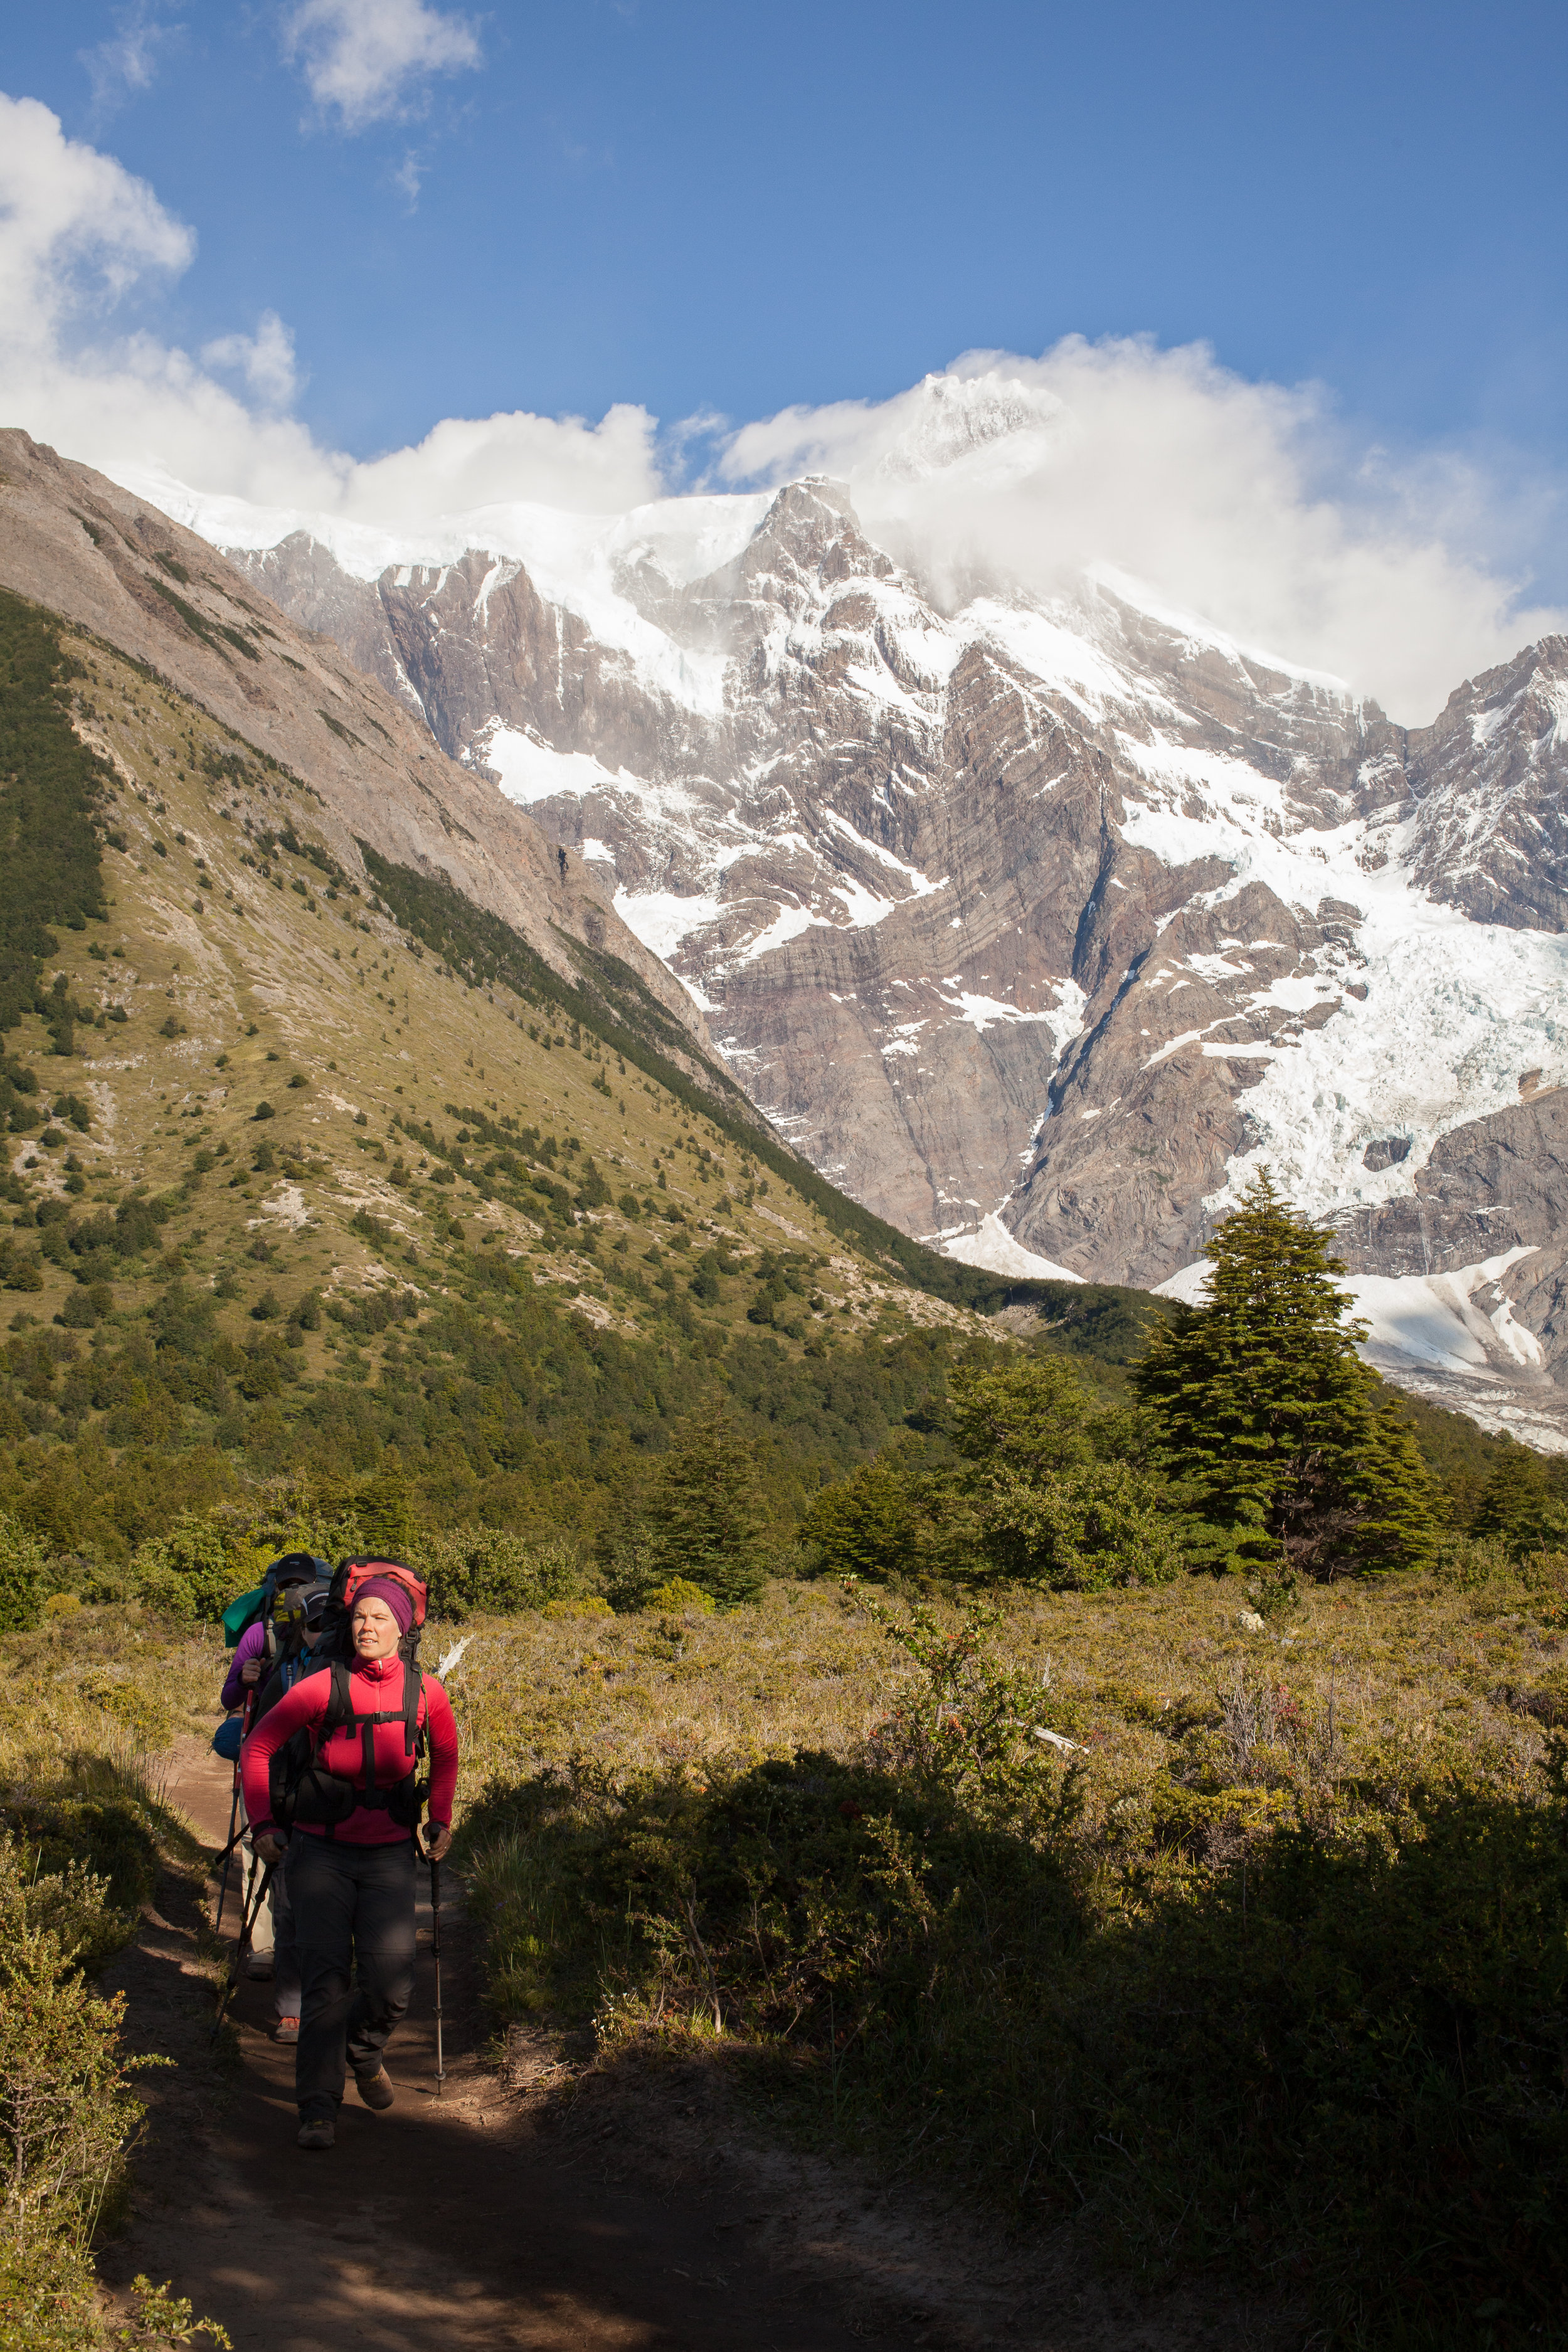 Callie leads the way from Italian Camp with the Franc és Glacier in the background.